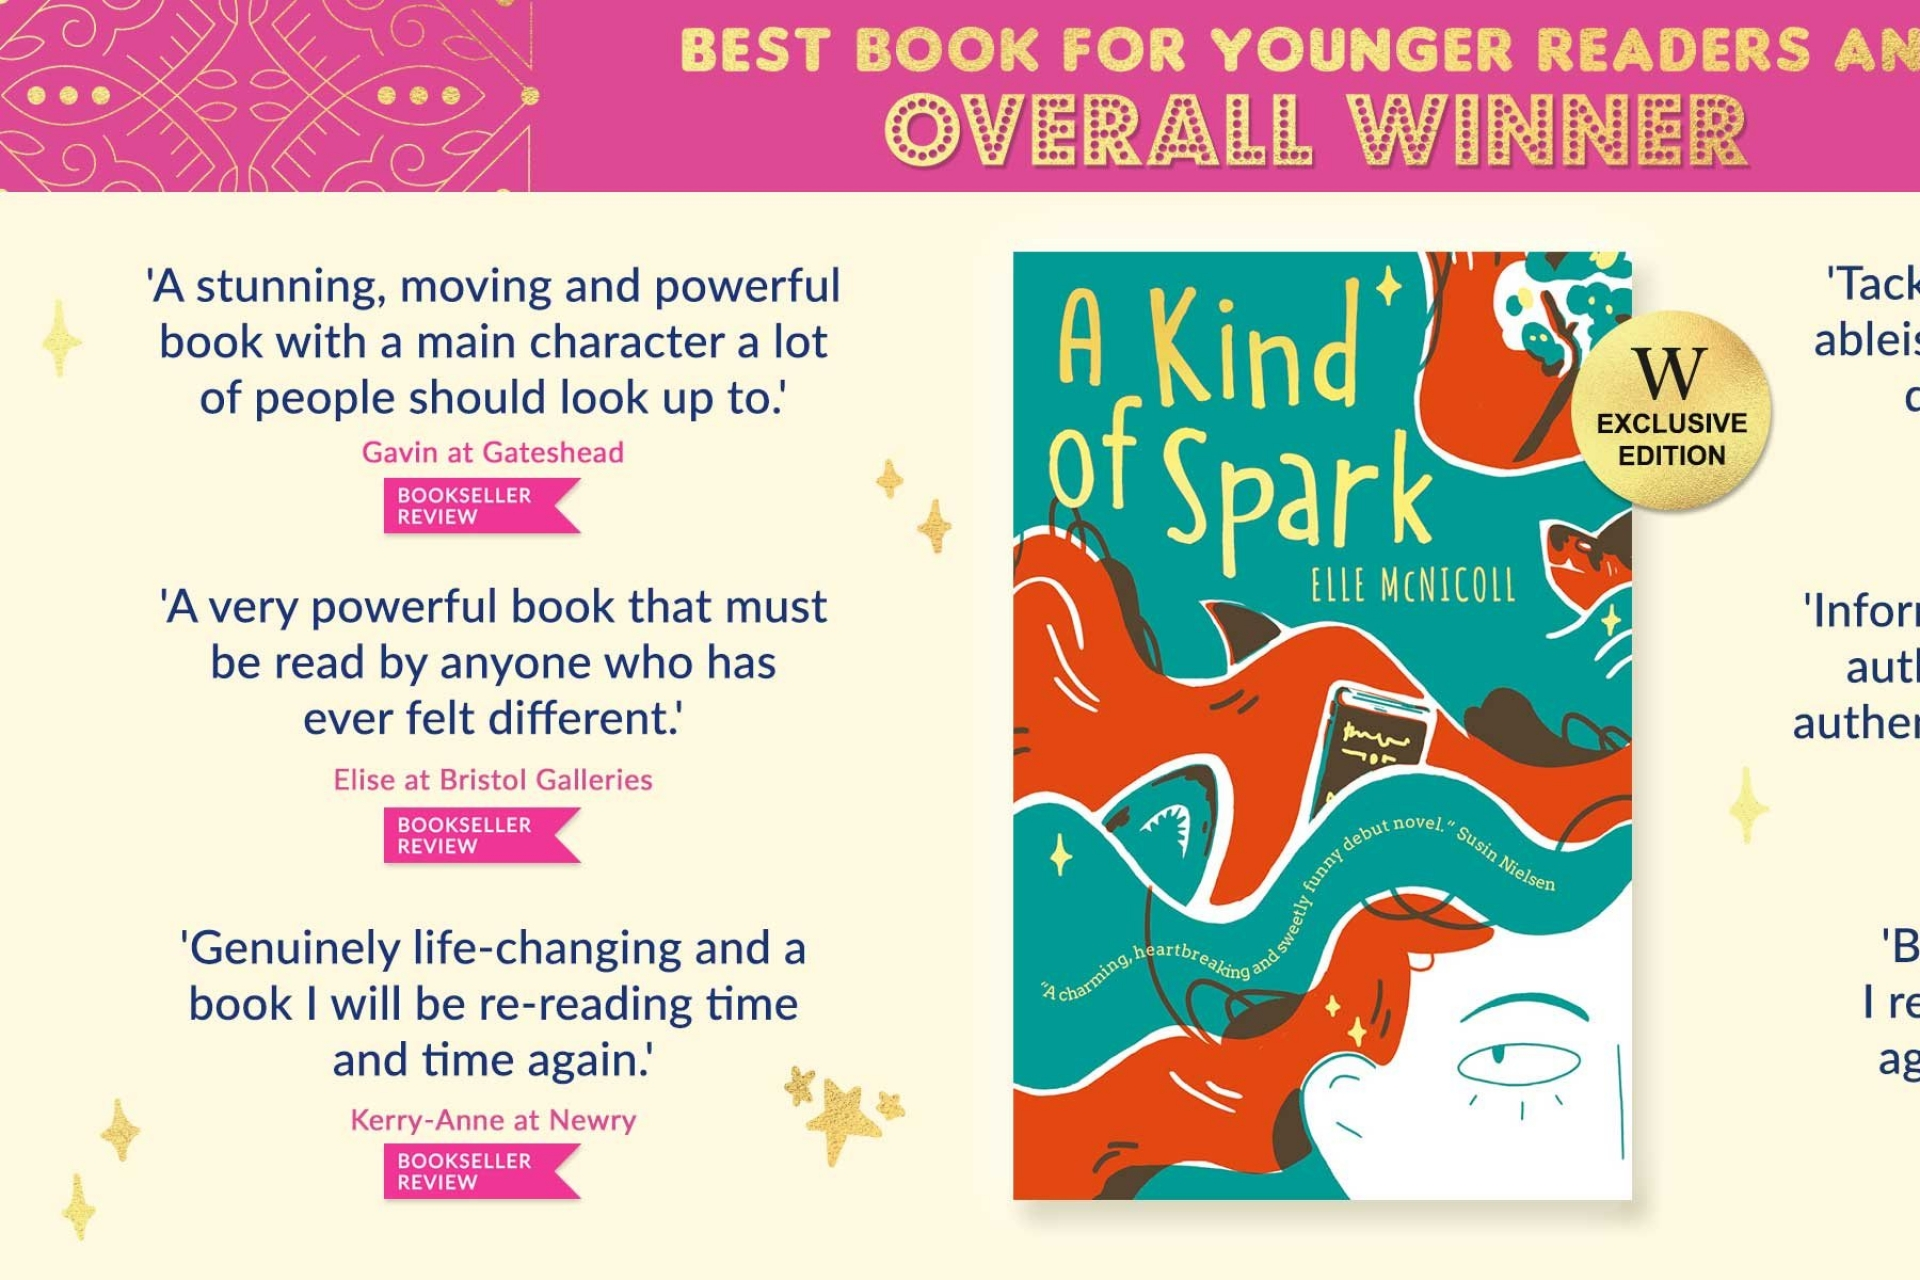 A Kind of Spark takes the triple crown with the Waterstones Children's Book of the Year